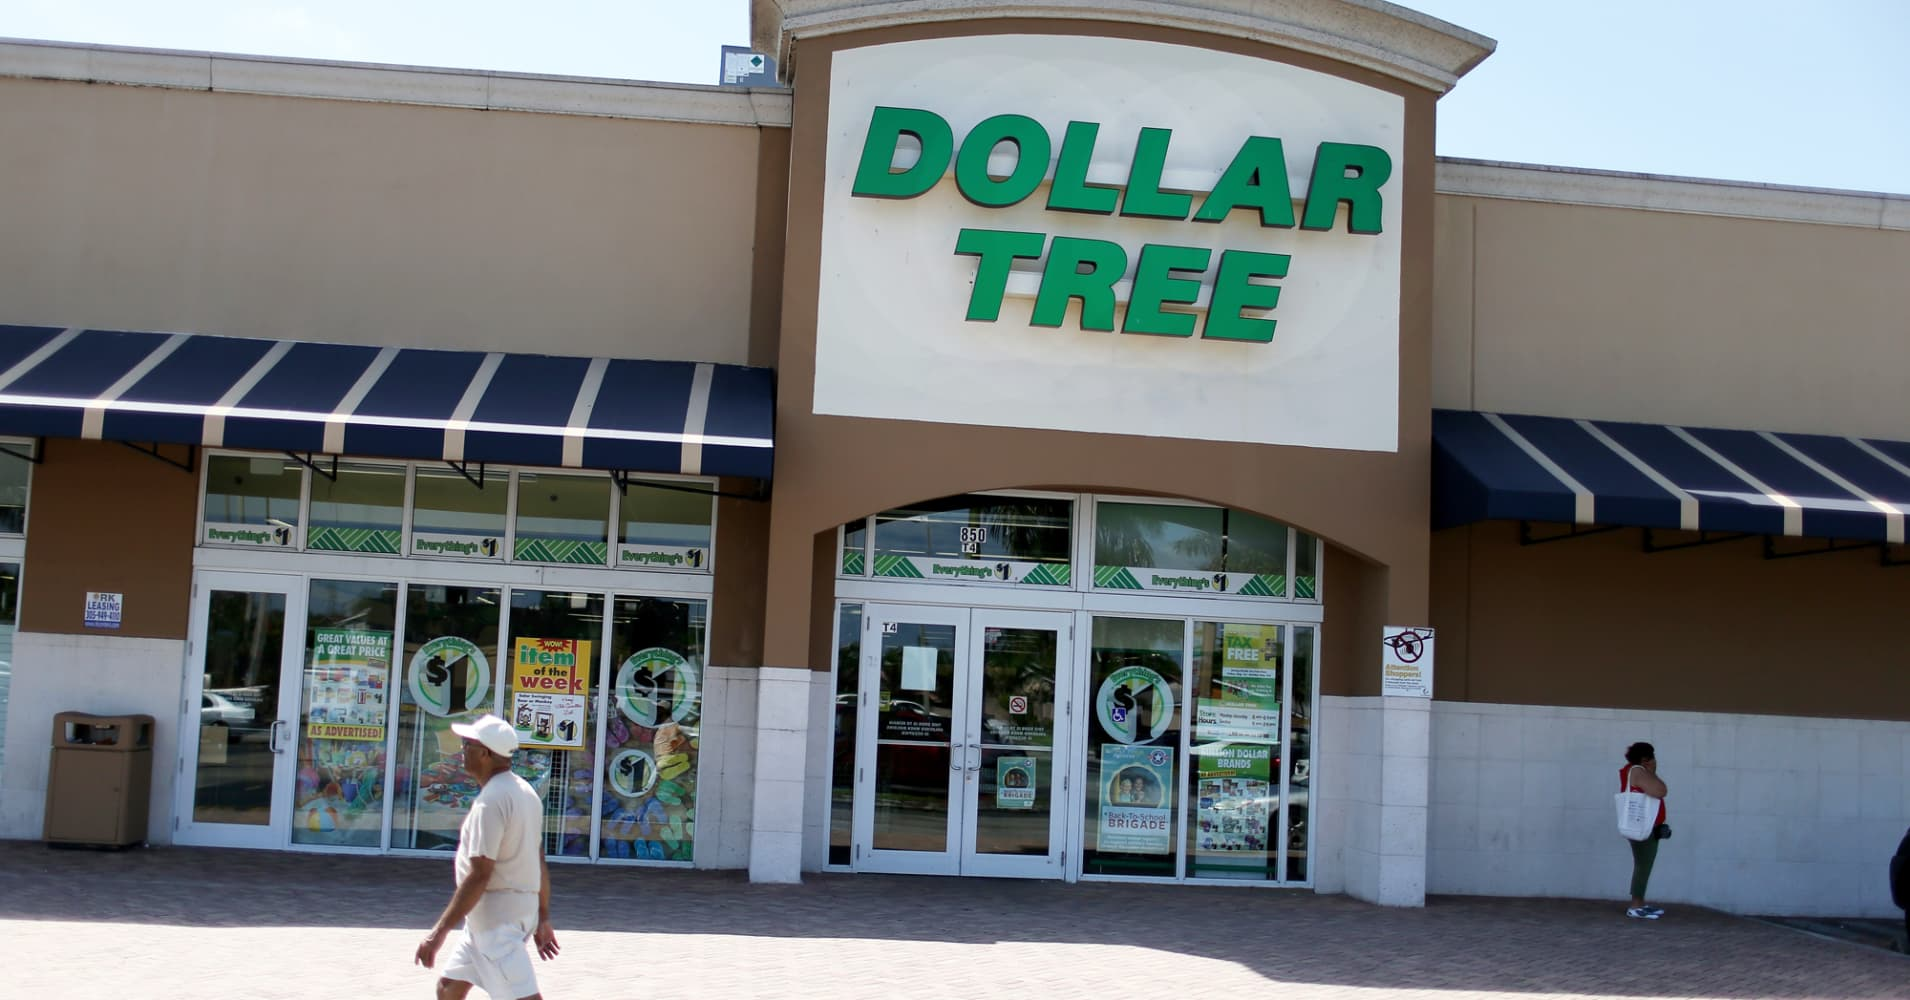 Buy Dollar Tree because lower income earners to get boost